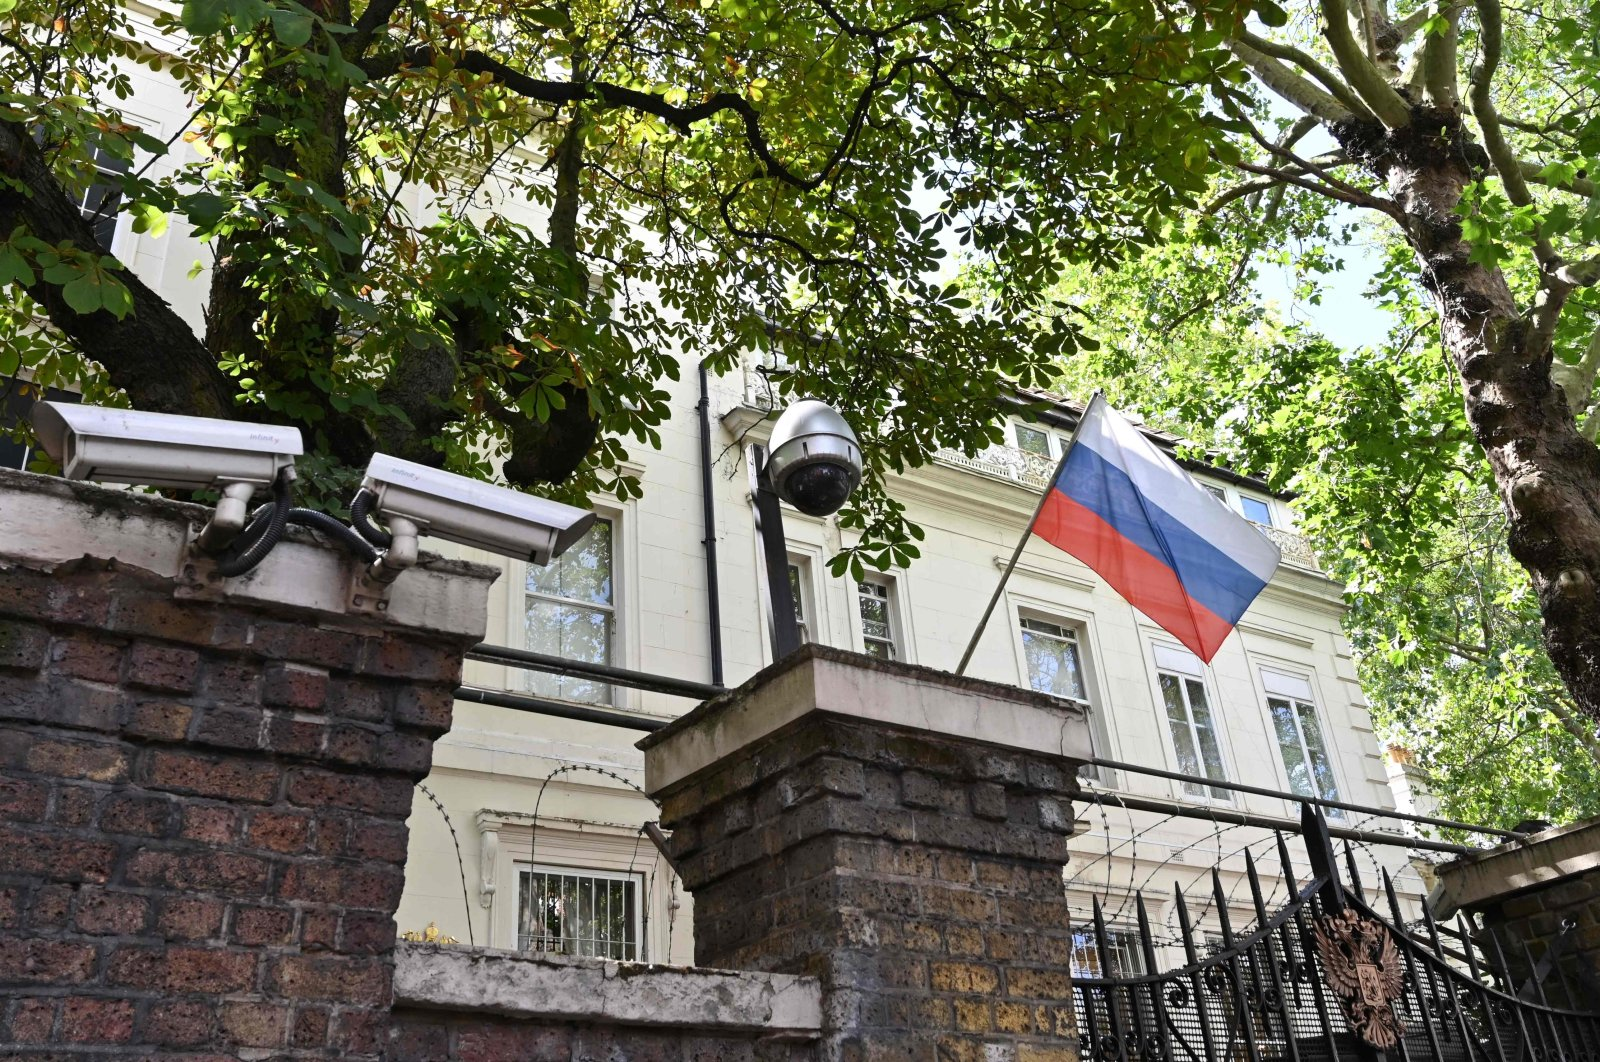 A Russian flag flies by surveillance cameras at the entrance to the Russian consulate in London, July 21, 2020. (AFP Photo)